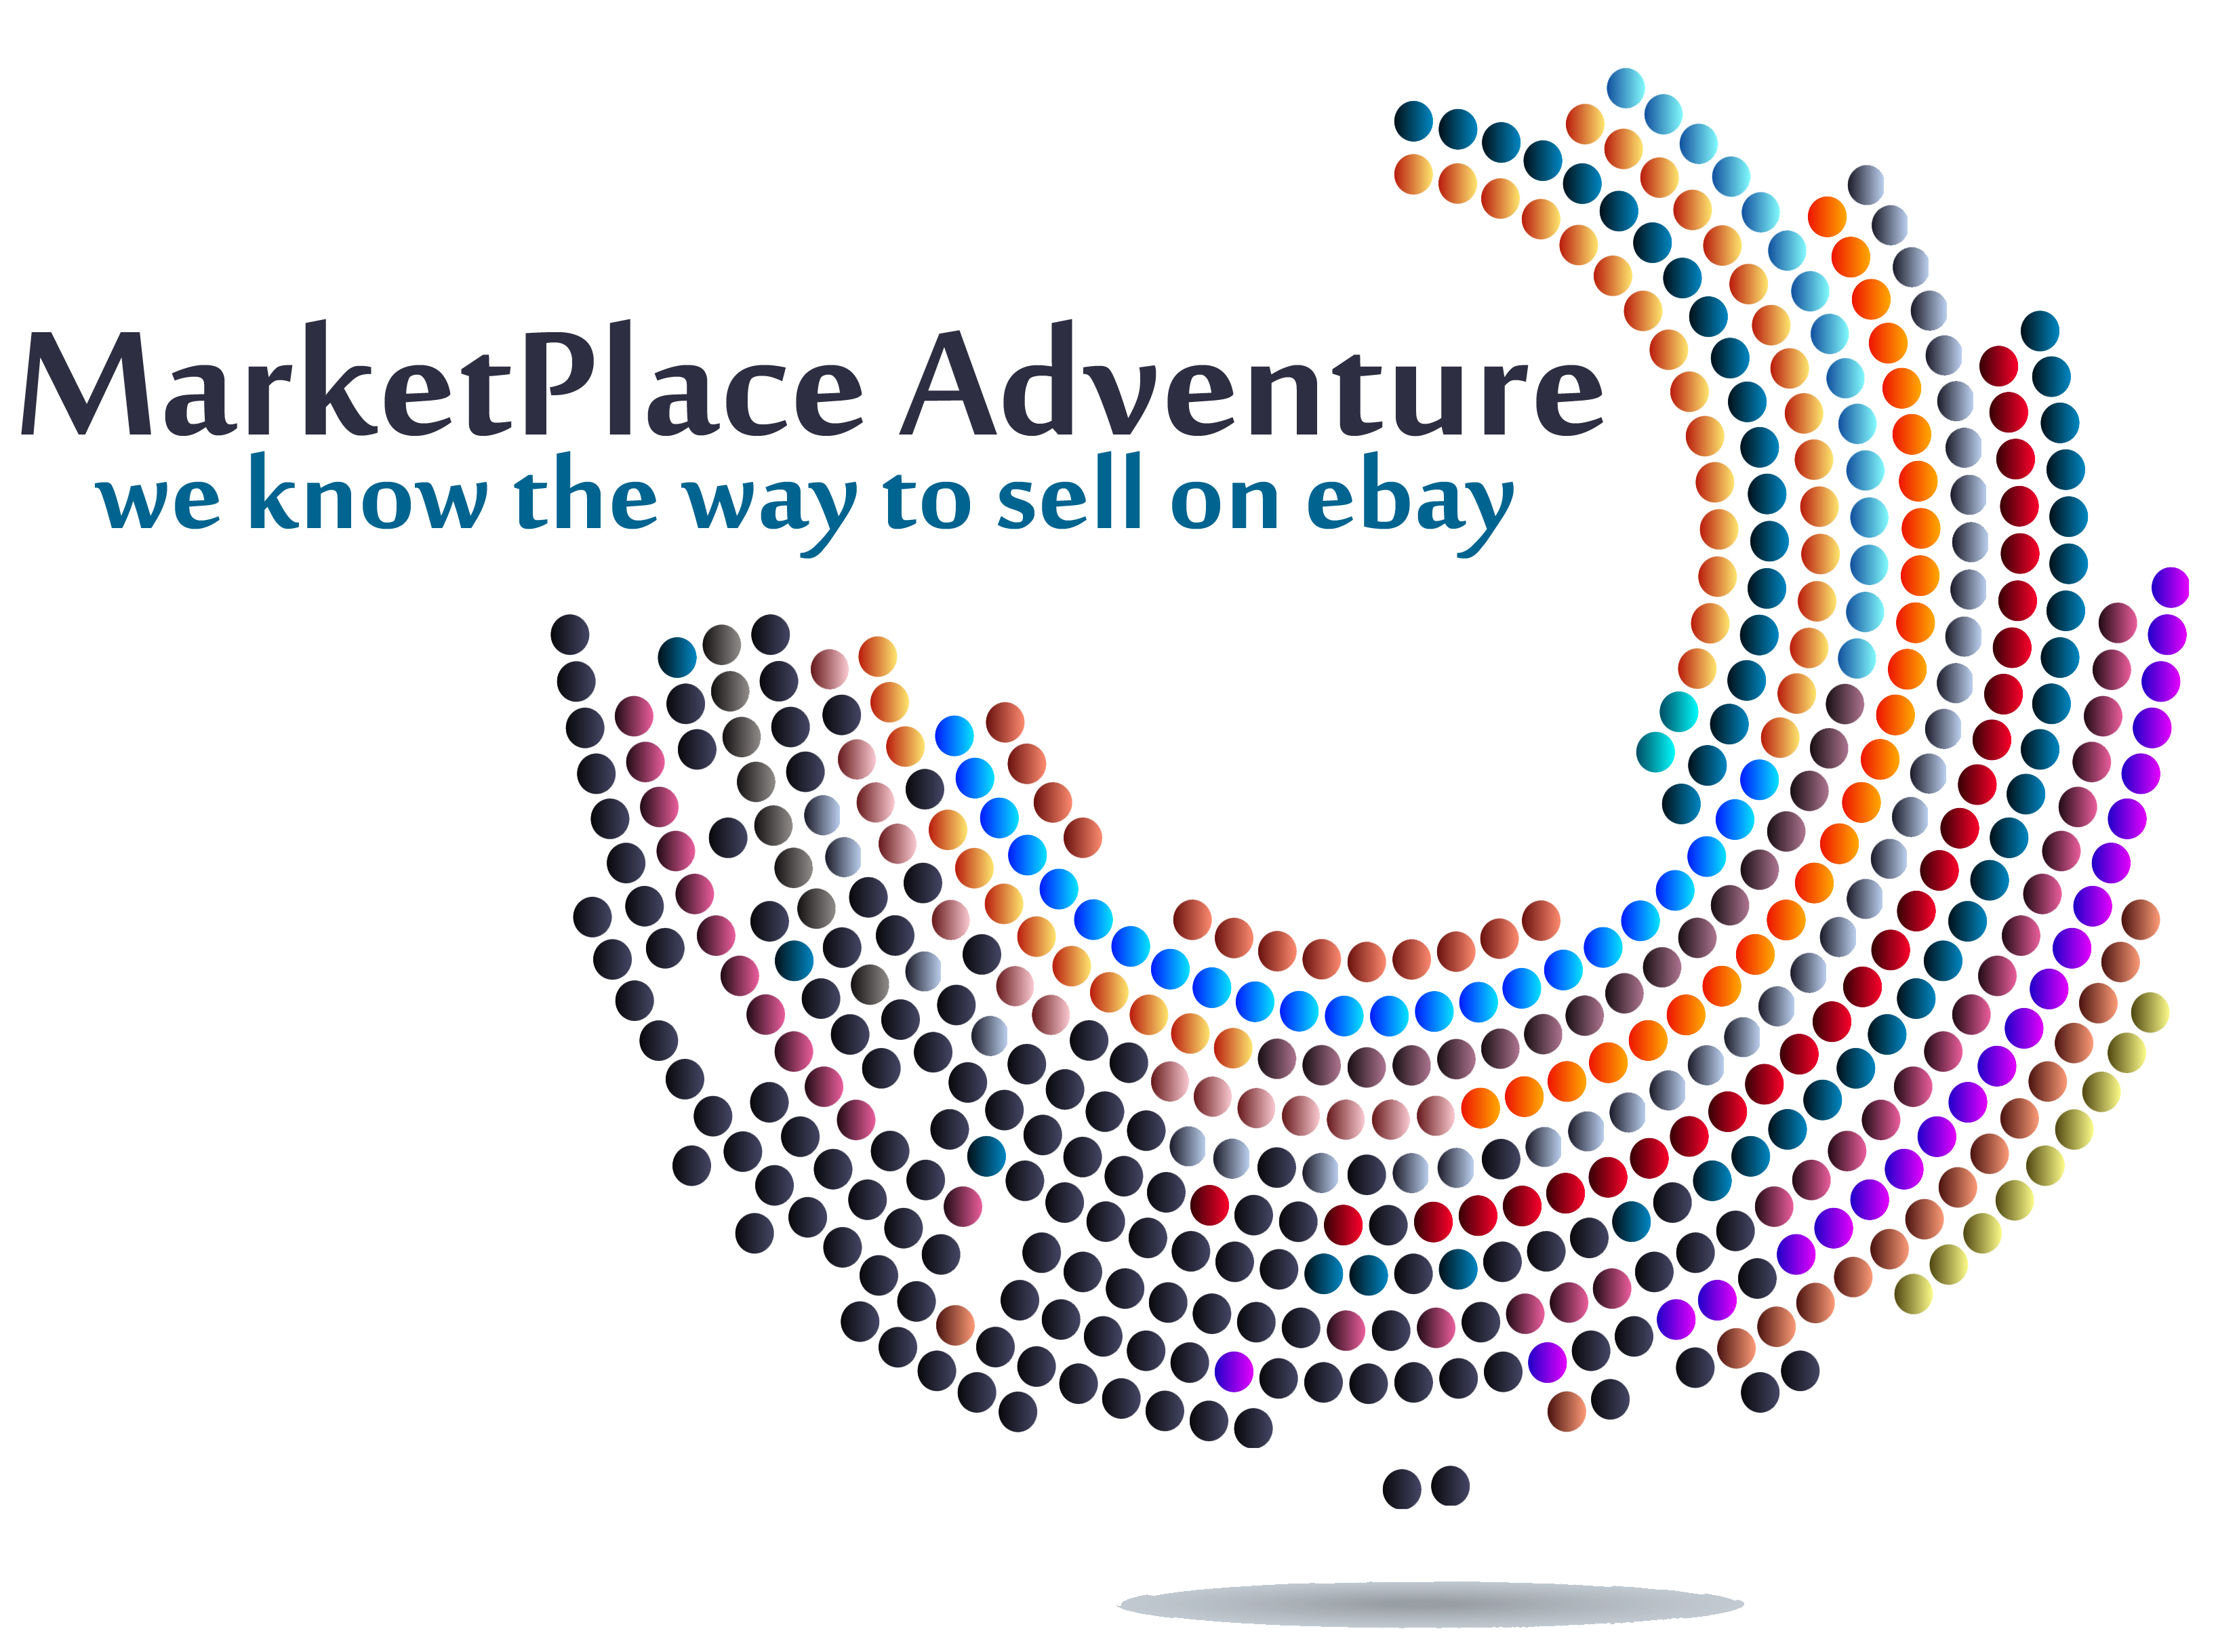 MarketPlace Adventure know the way to sell on ebay